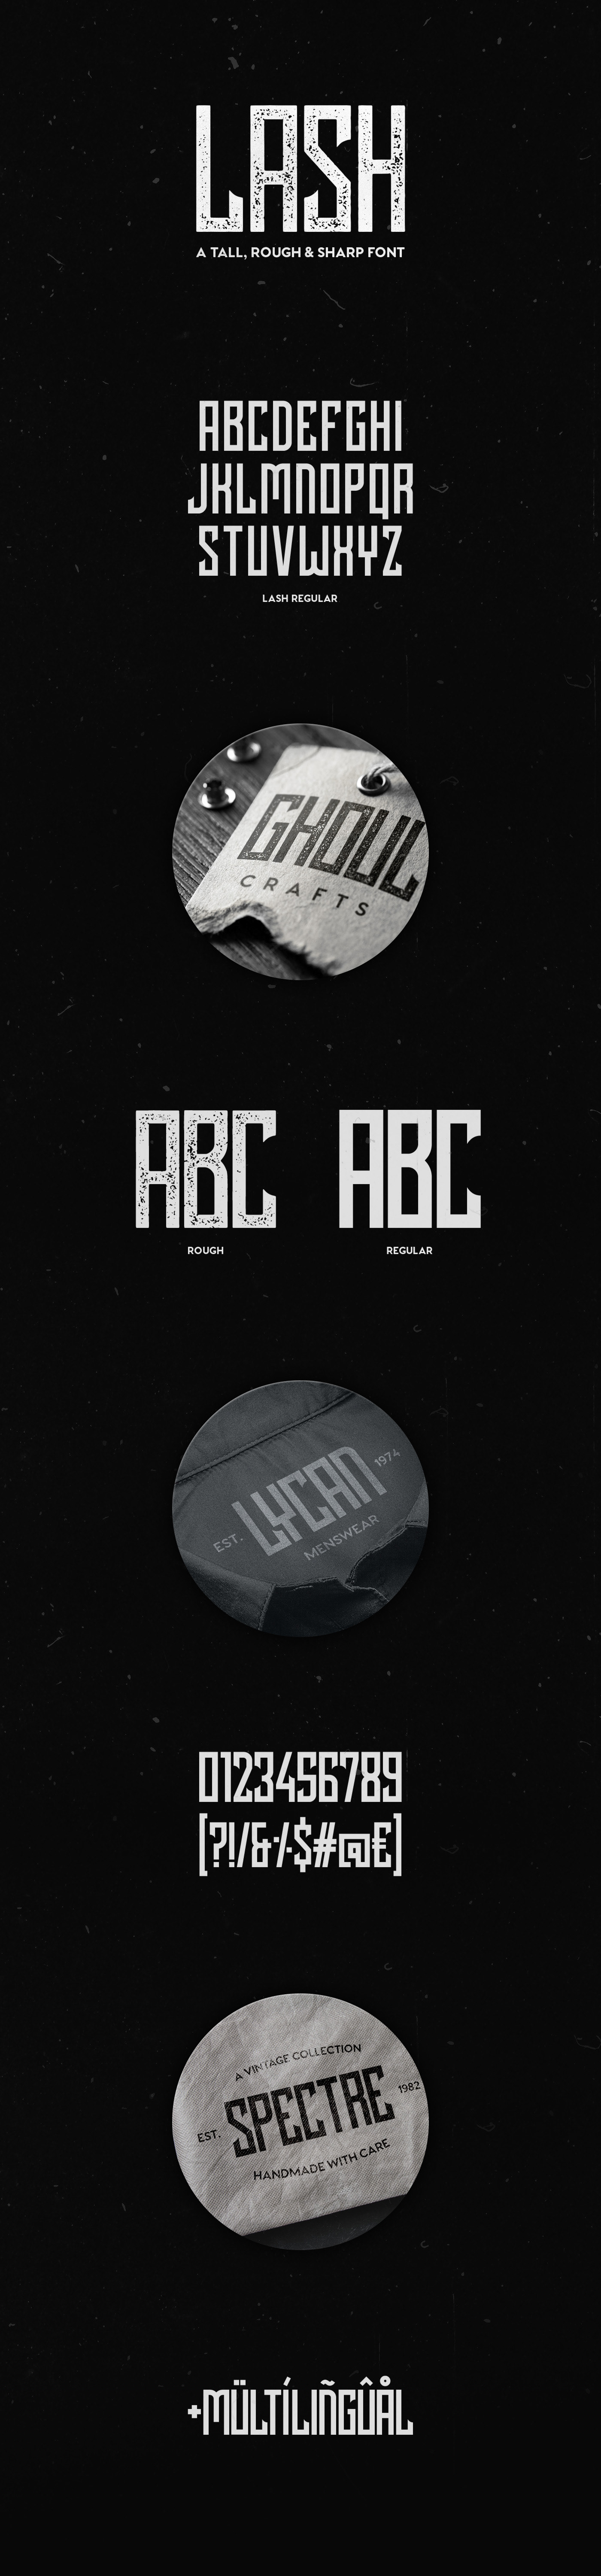 free font Typeface vintage Retro textured rough Display Title cover